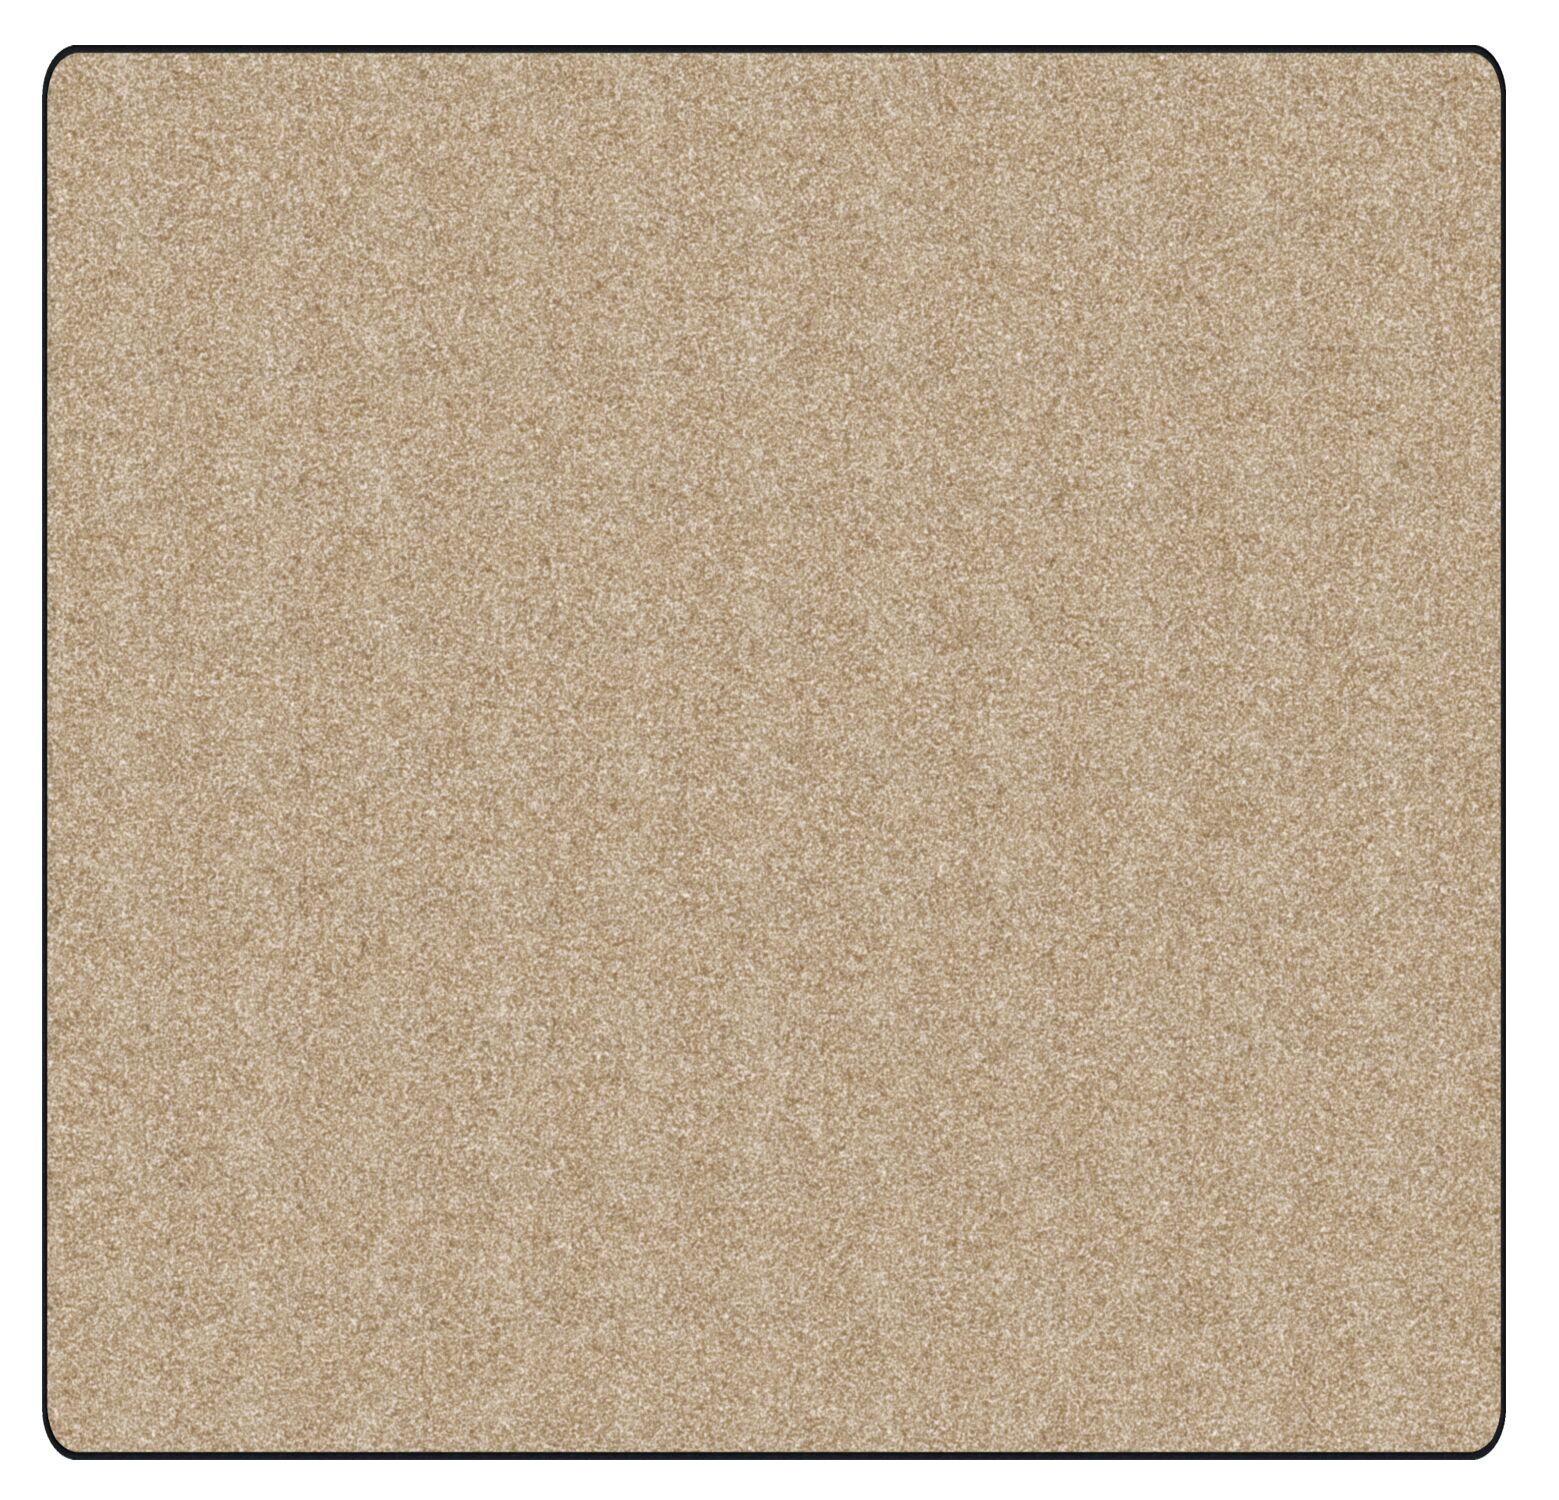 Americolors Almond Area Rug Rug Size: Square 6'